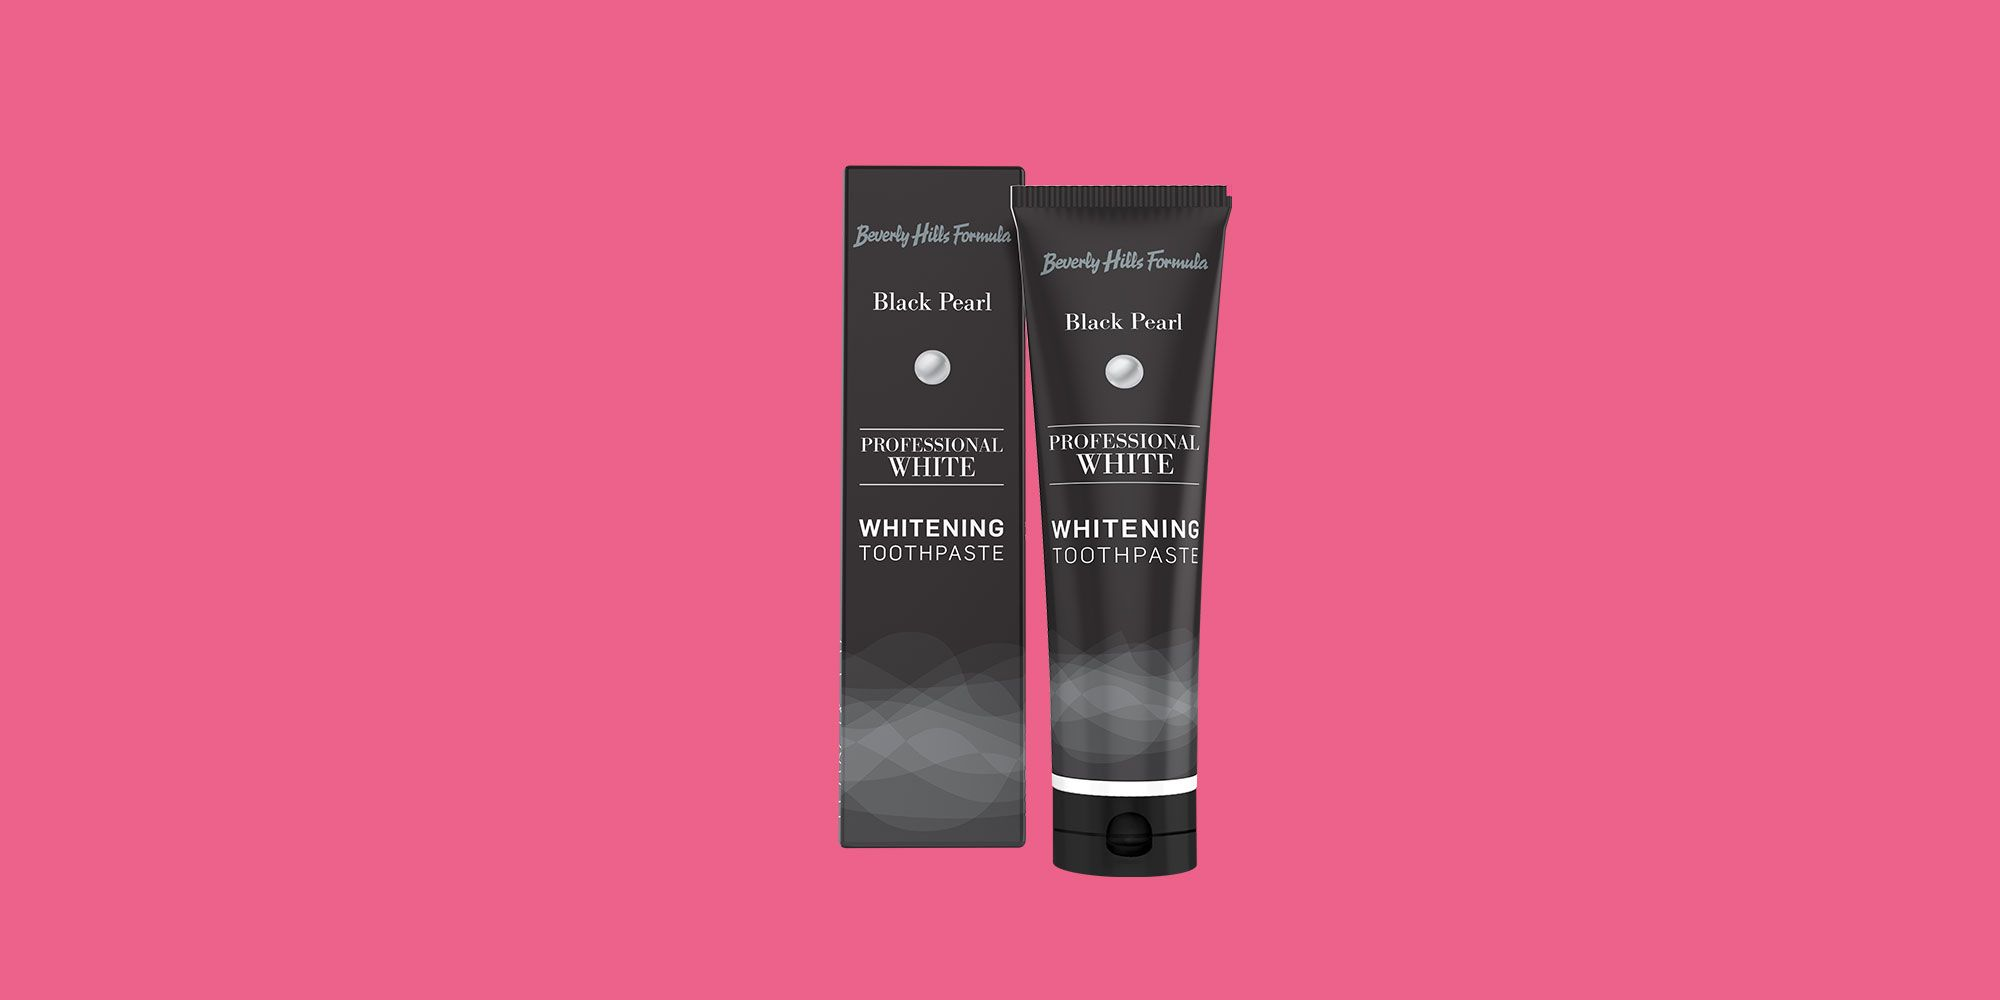 Beverly Hills Formula Black Pearl Whitening Toothpaste